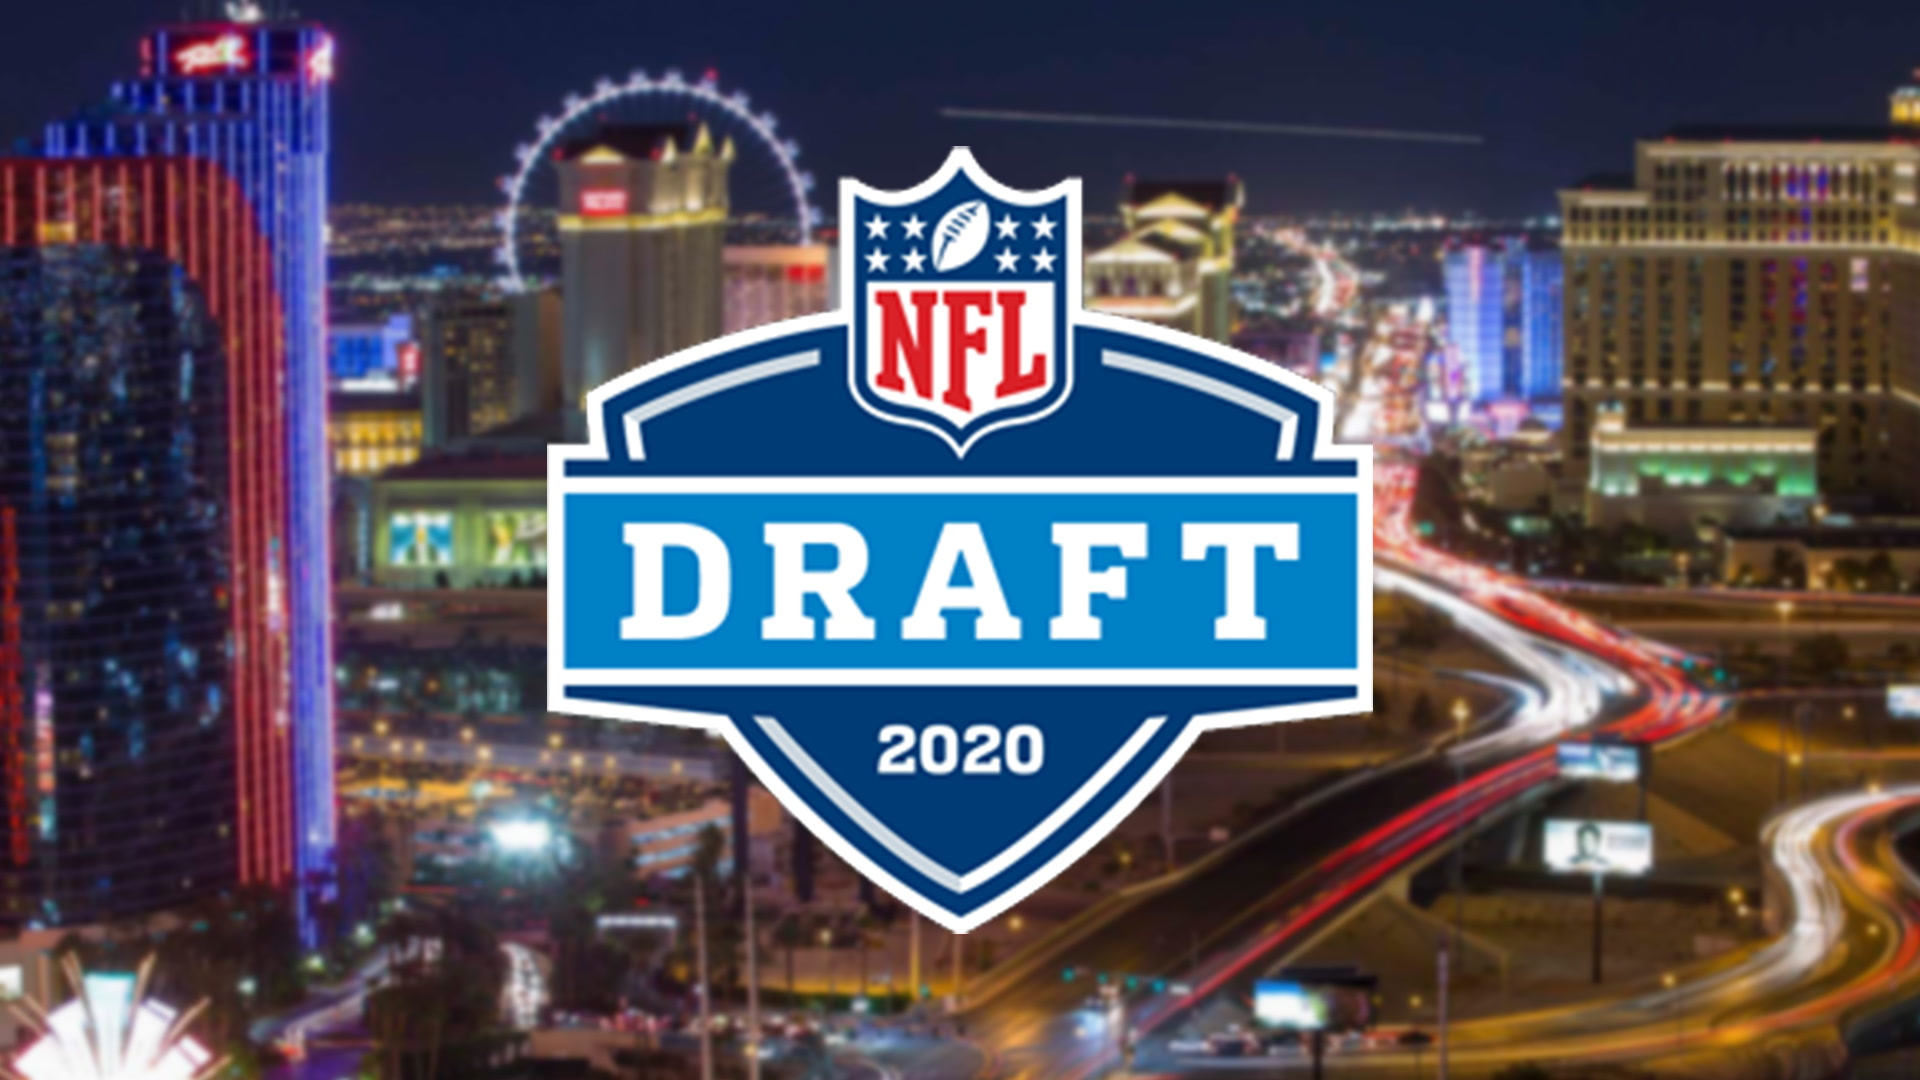 2020 NFL Draft in Las Vegas